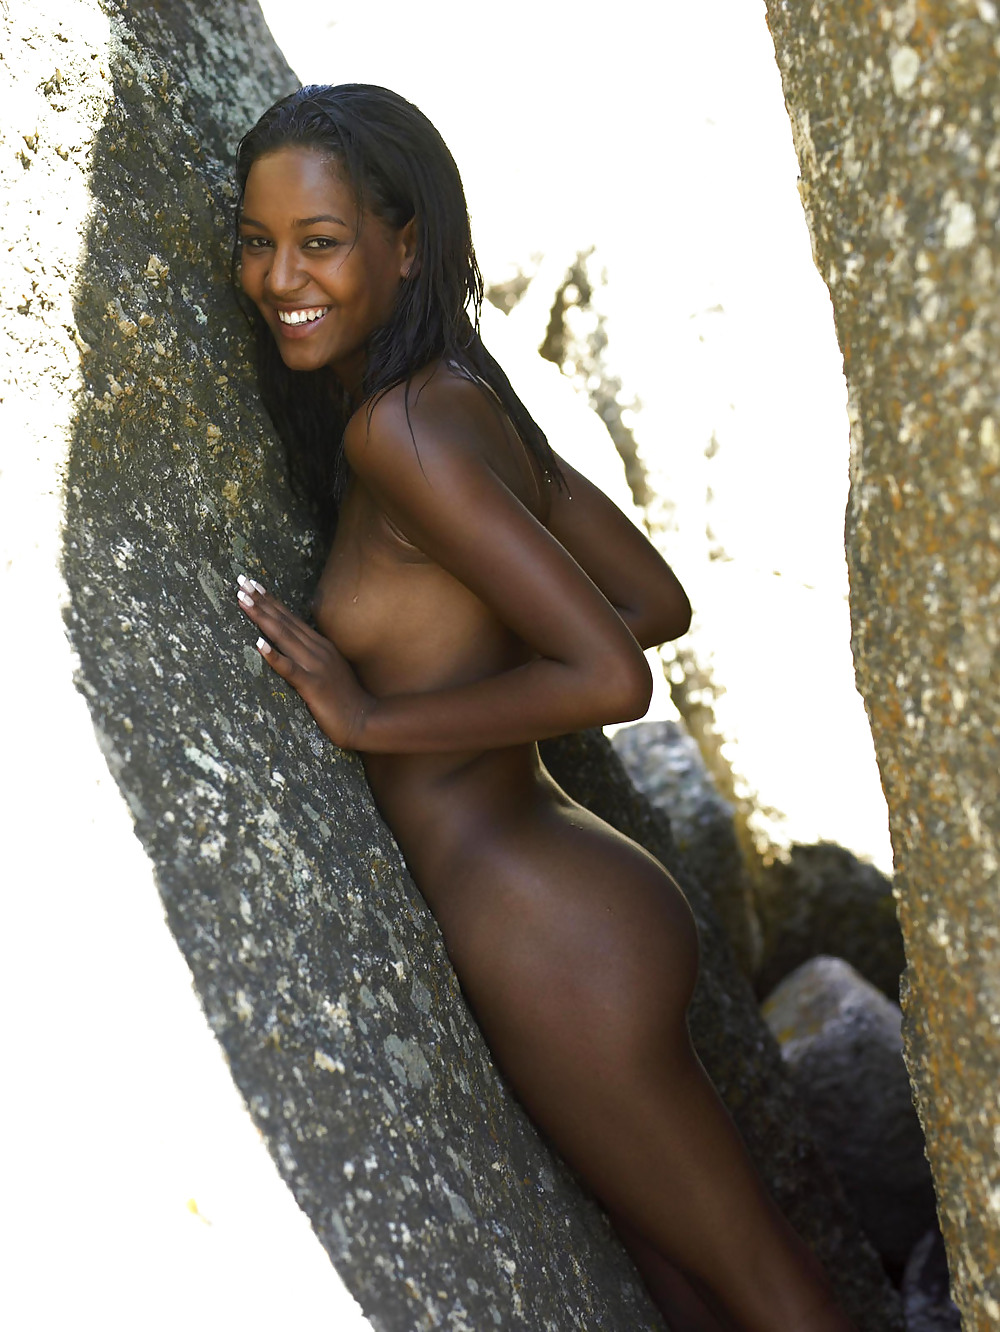 Black Teen Native Girls - 15 Pics - Xhamstercom-6823